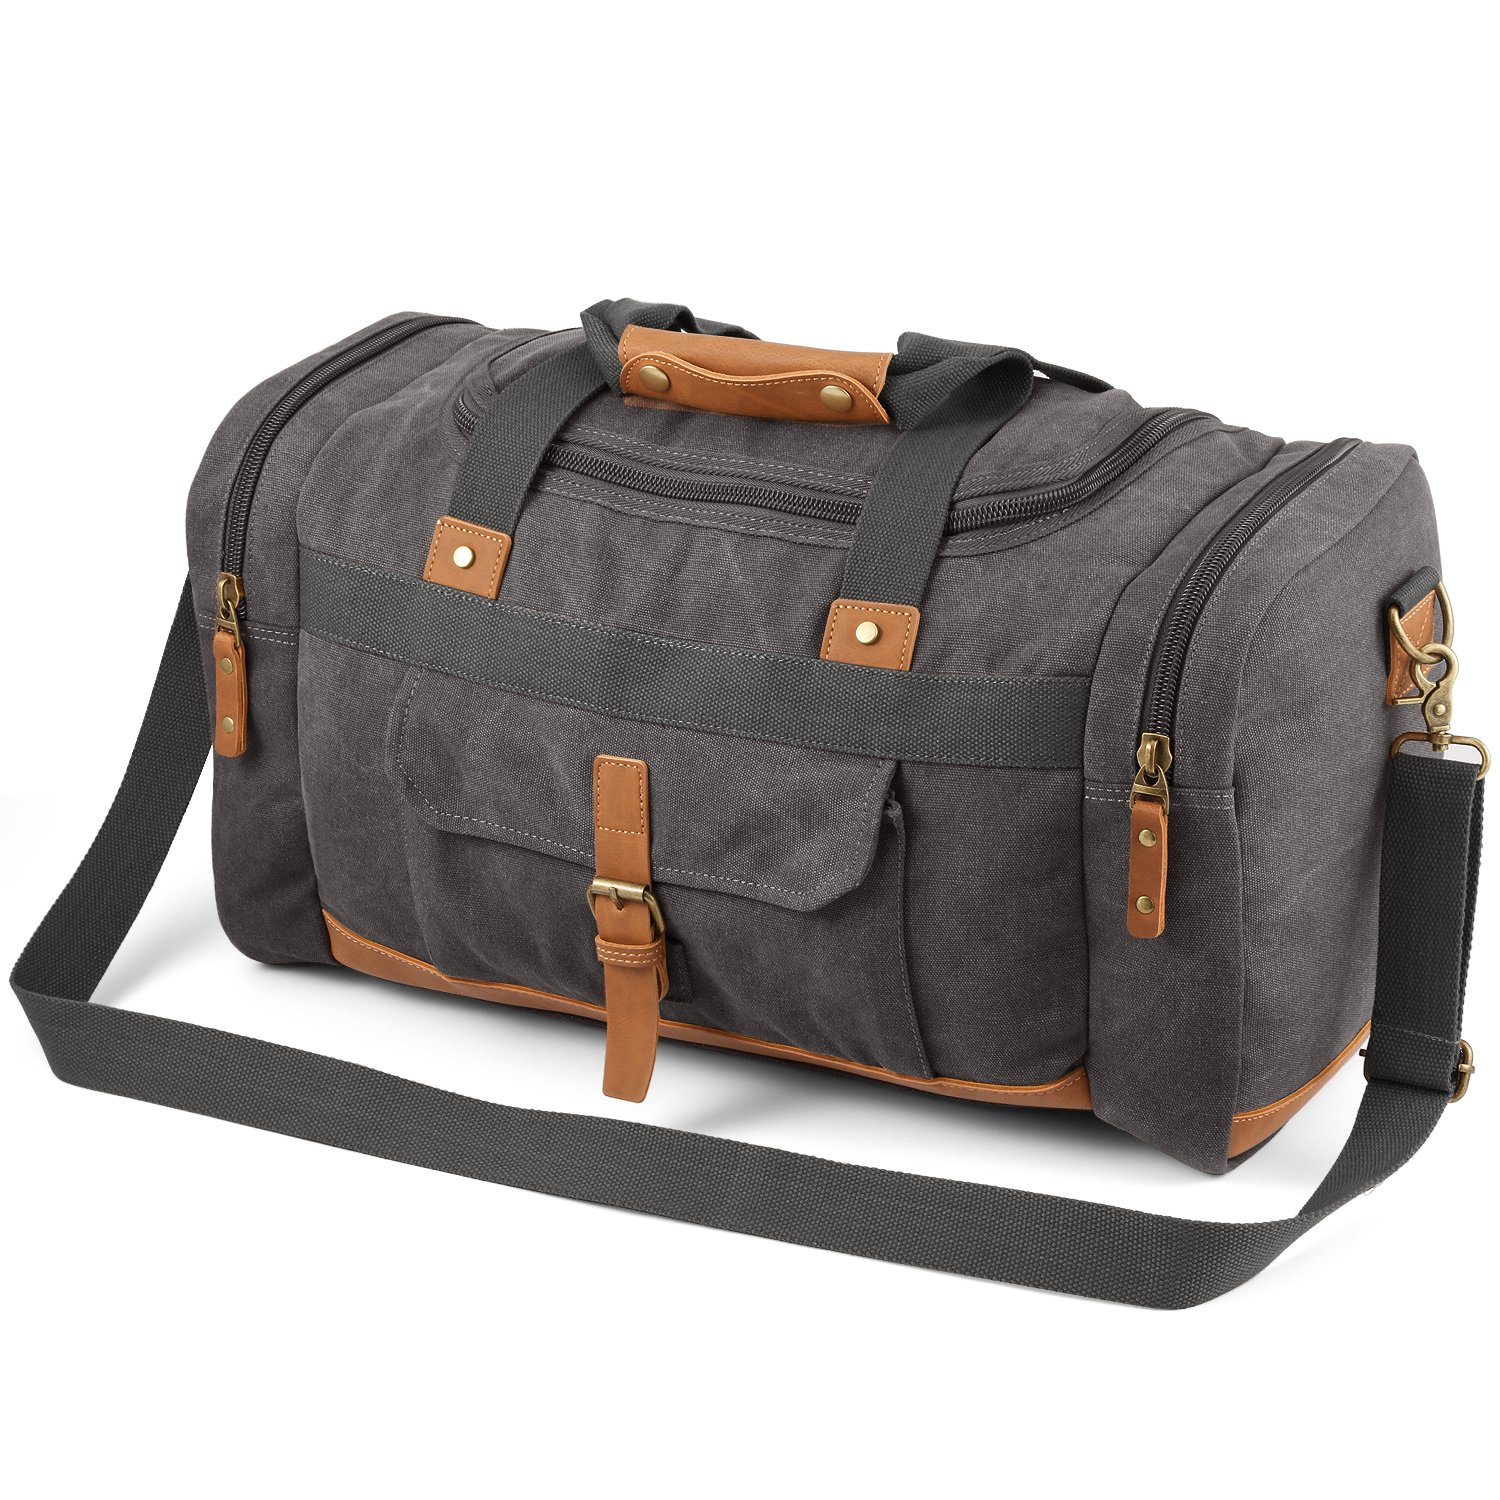 Plambag 50L Canvas Luggage Duffel Bag Travel Tote Shoulder Bag PB085CE